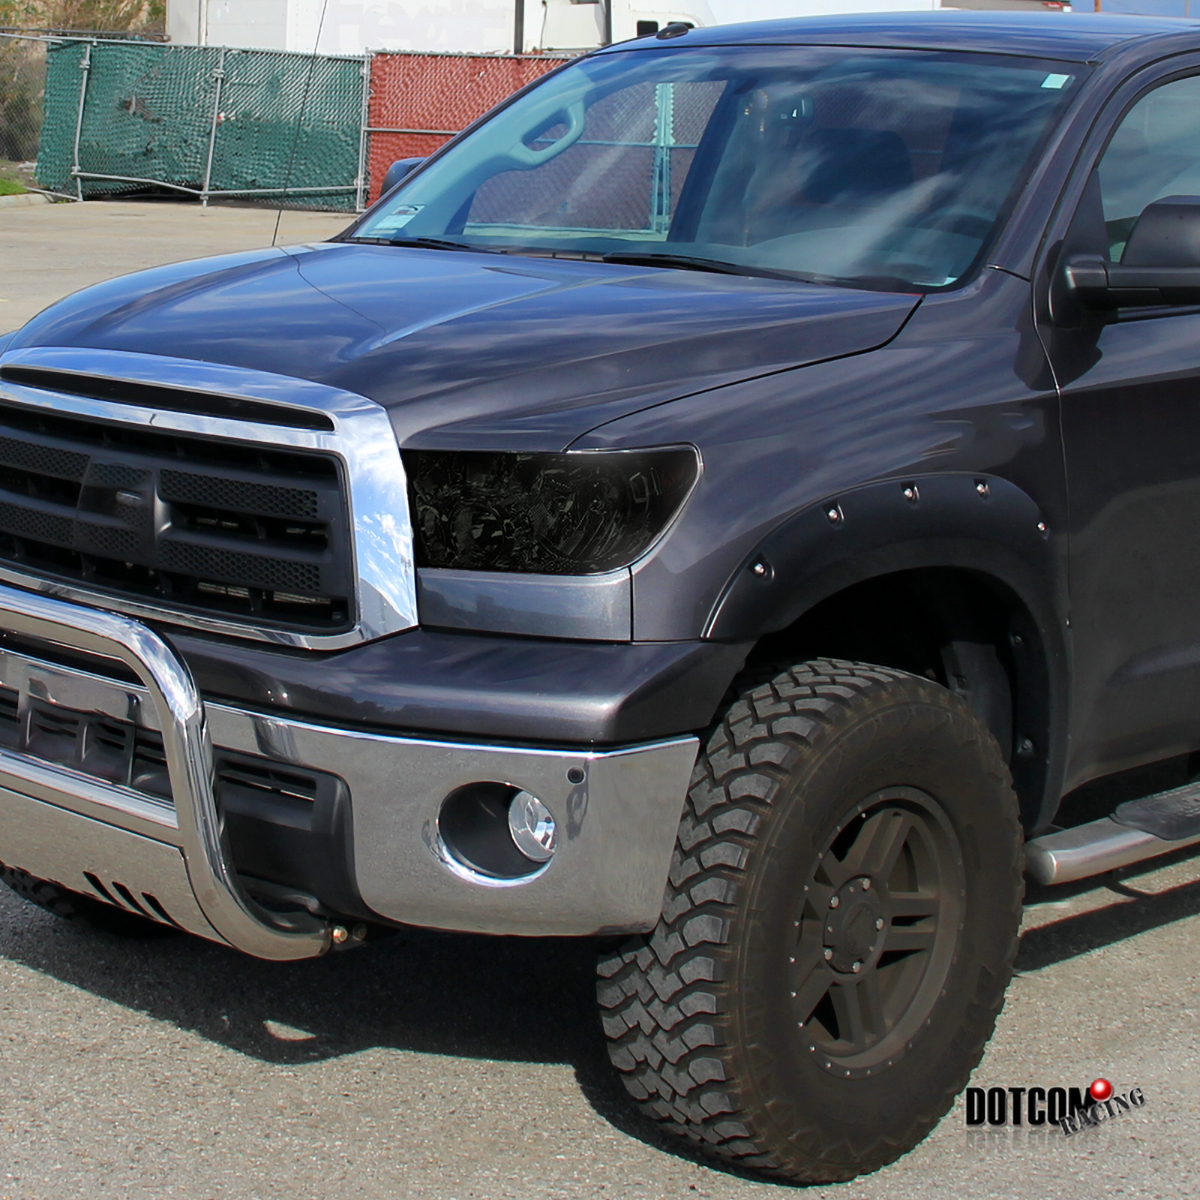 Toyota Sequoia Windshield Replacement Cost: For Toyota 07-13 Tundra 2008-2014 Sequoia JDM Smoke Lens